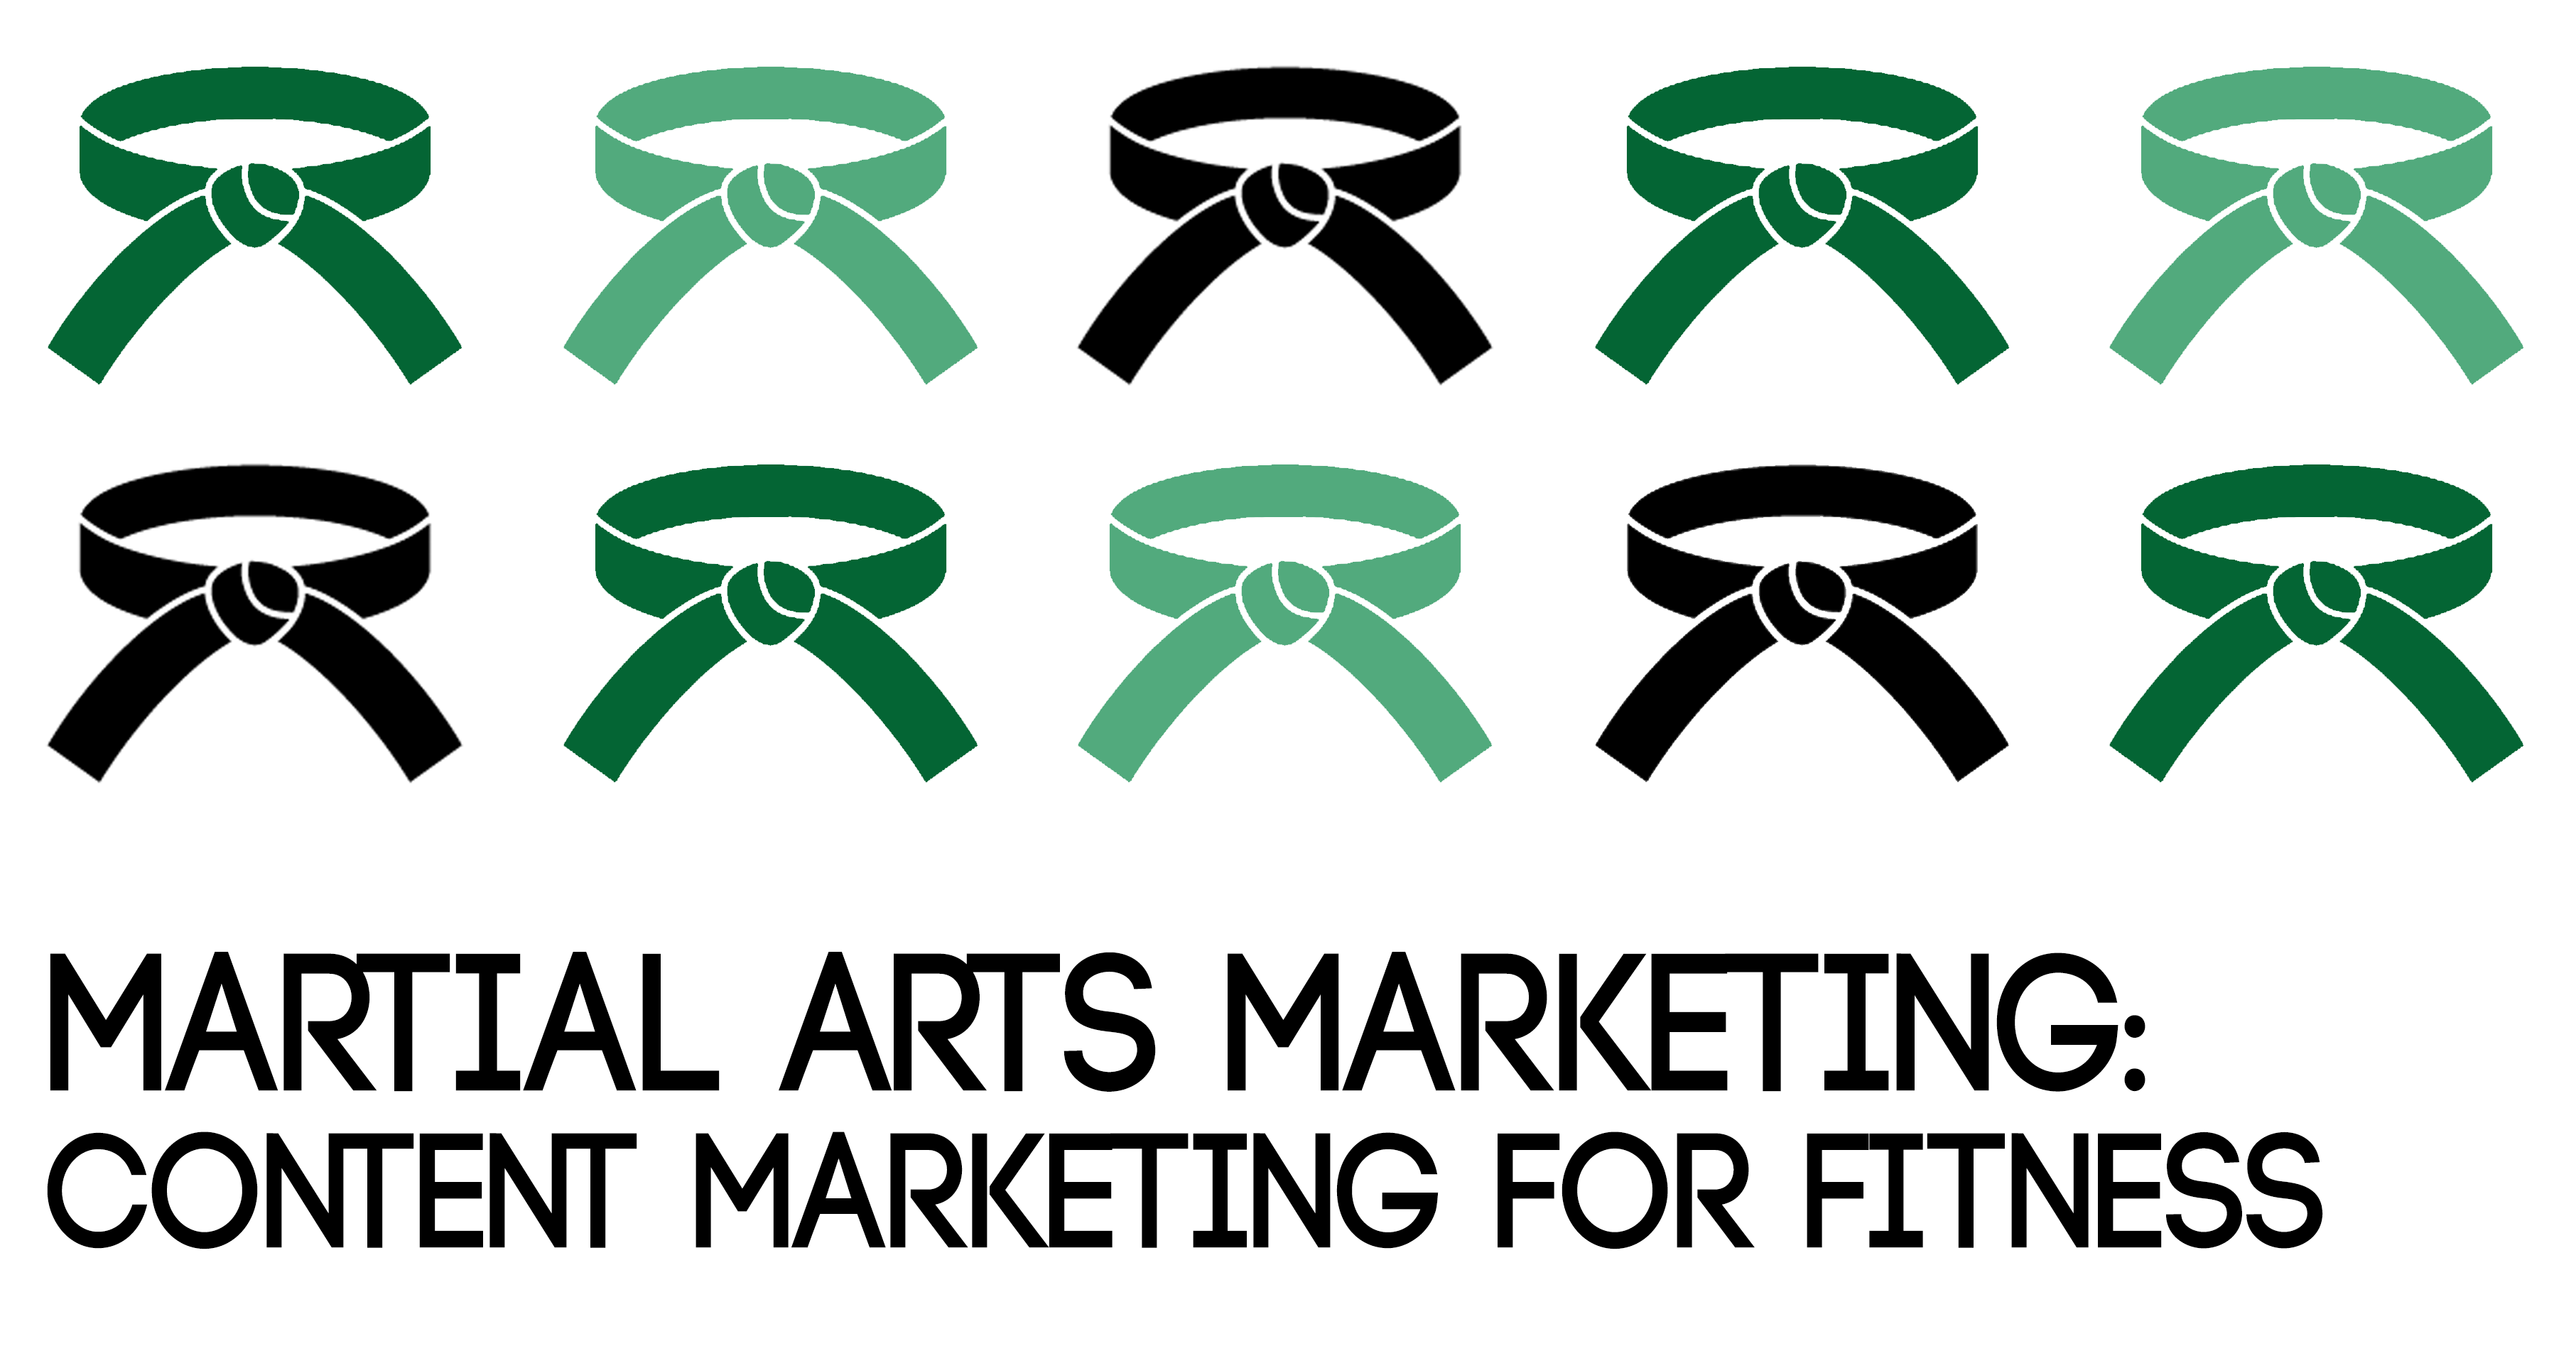 Martial Arts Marketing: Content Marketing for Fitness at Marketing TEA